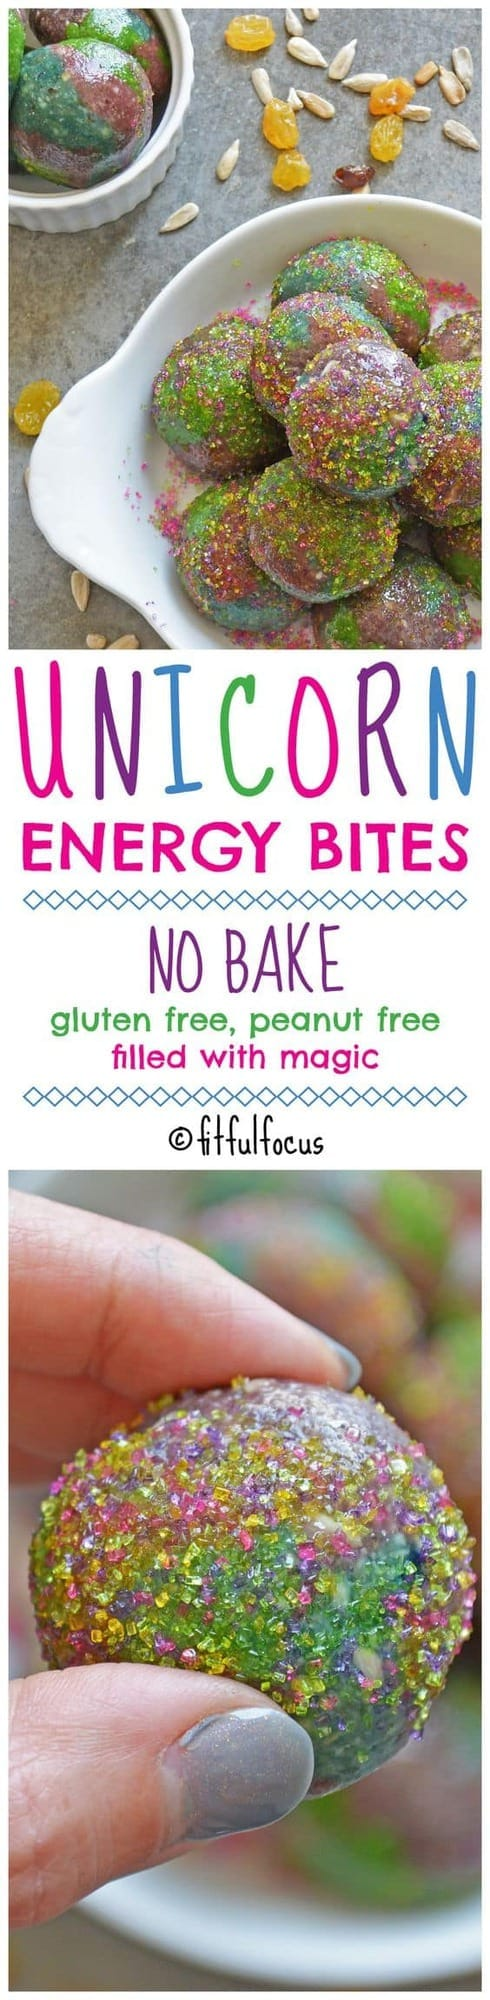 Unicorn Energy Bites by Fitful Focus | Energy ball recipes for the entire family!